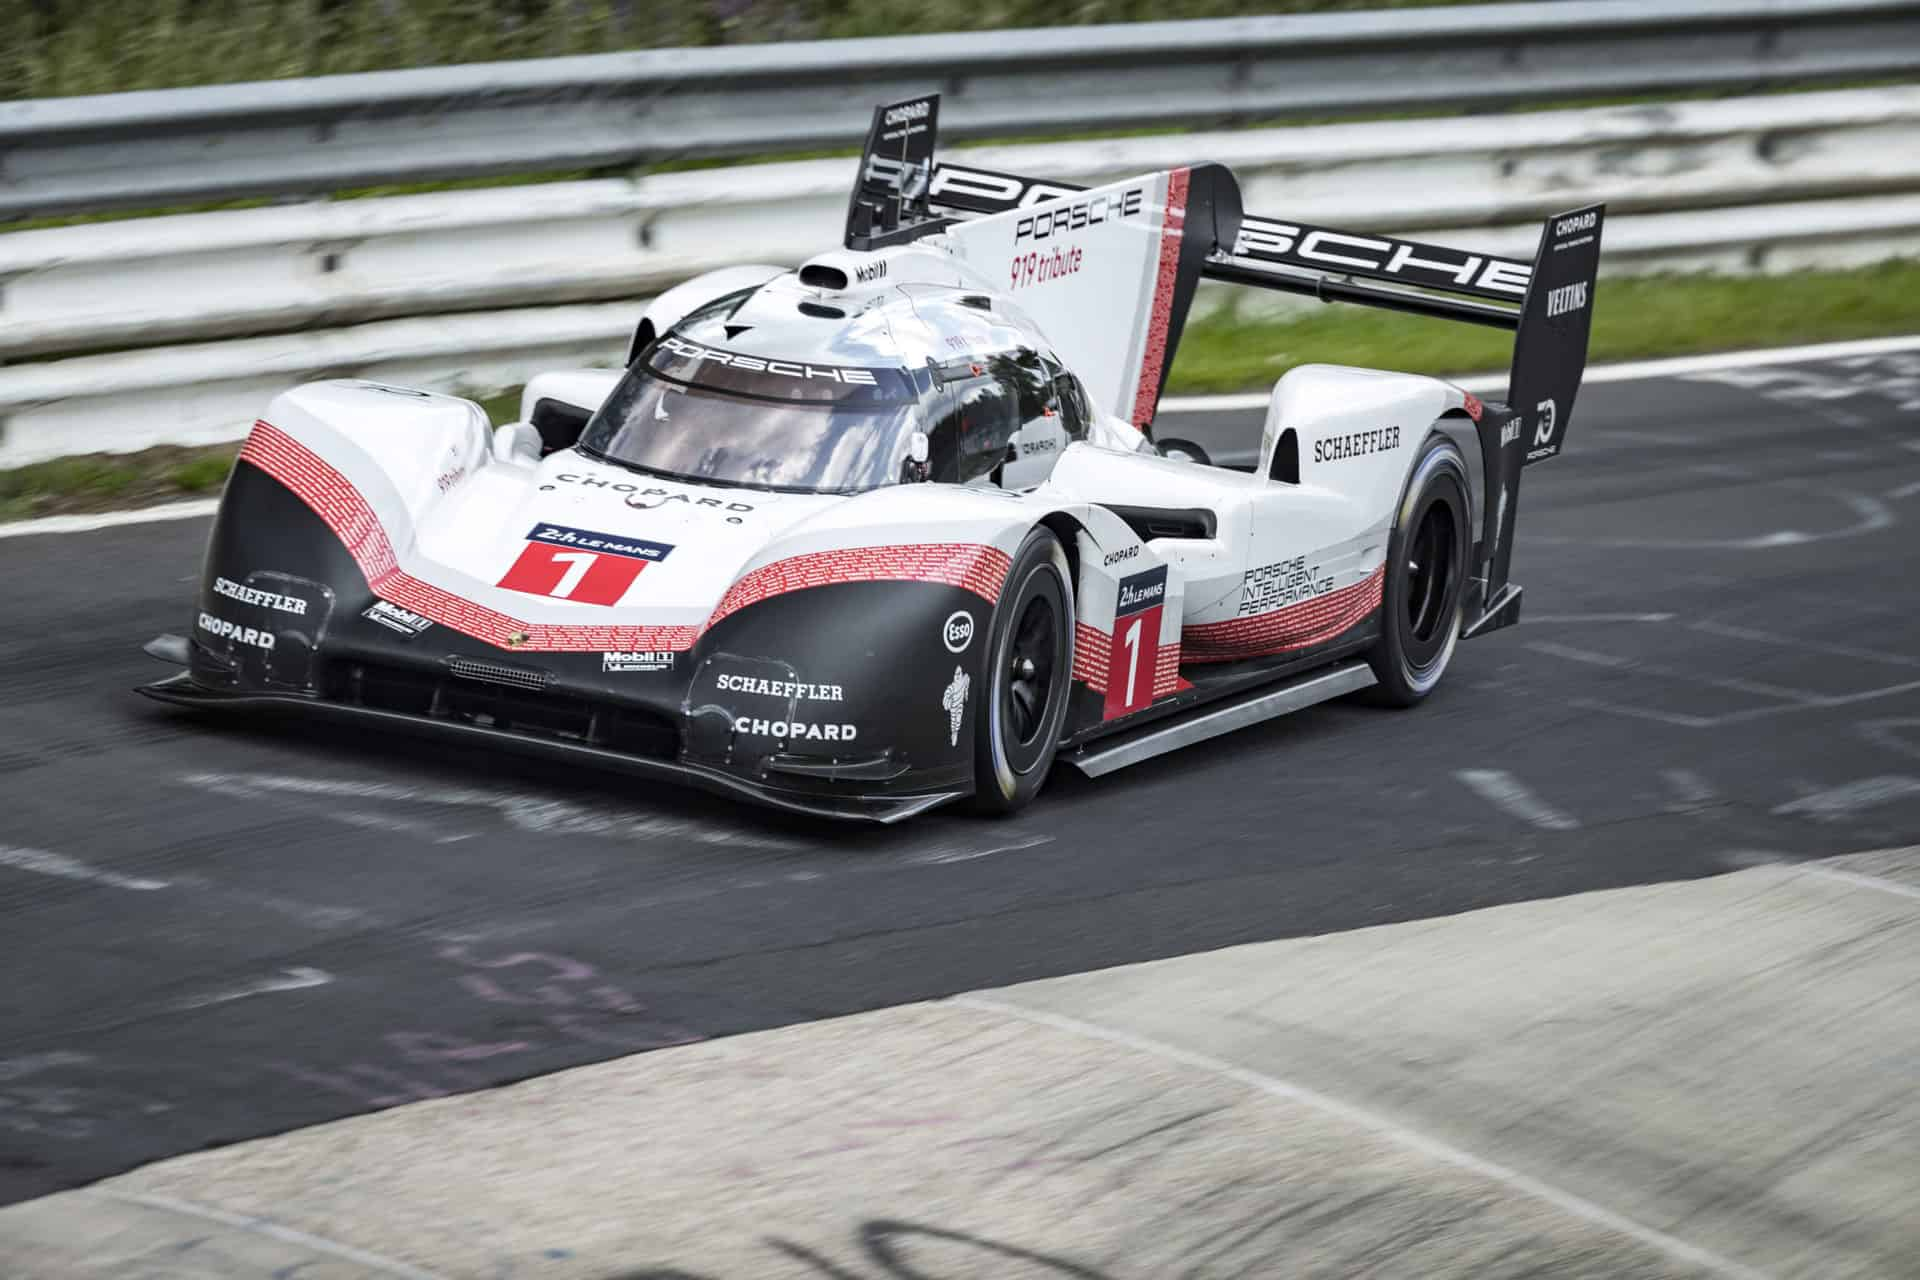 Best time on the Nürburgring Nordschleife Timo Bernhard beats 6 minute mark 5